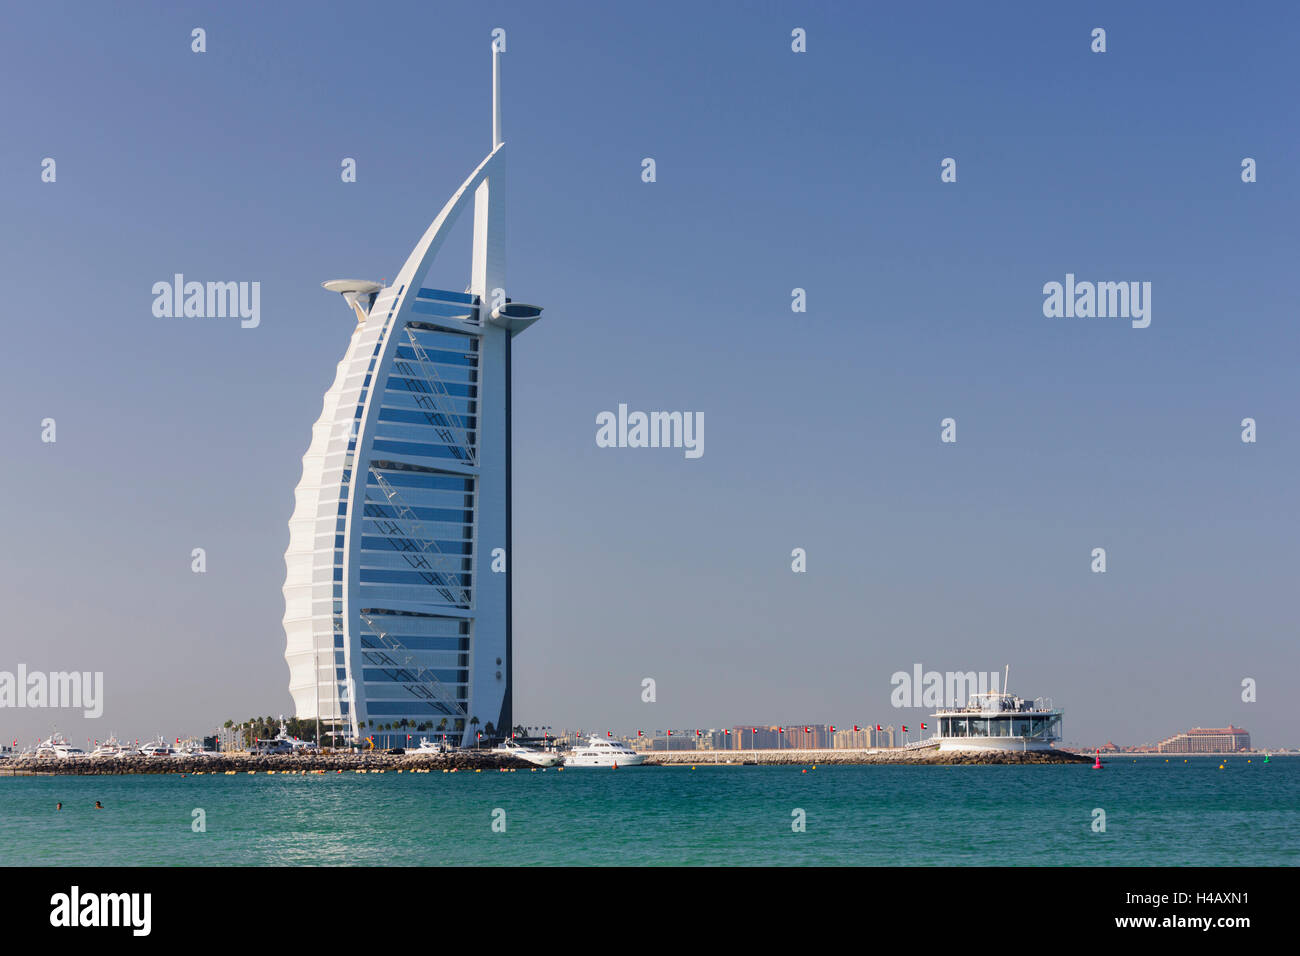 Luxury hotel Burj Al Arab, Dubai, United Arab Emirates - Stock Image